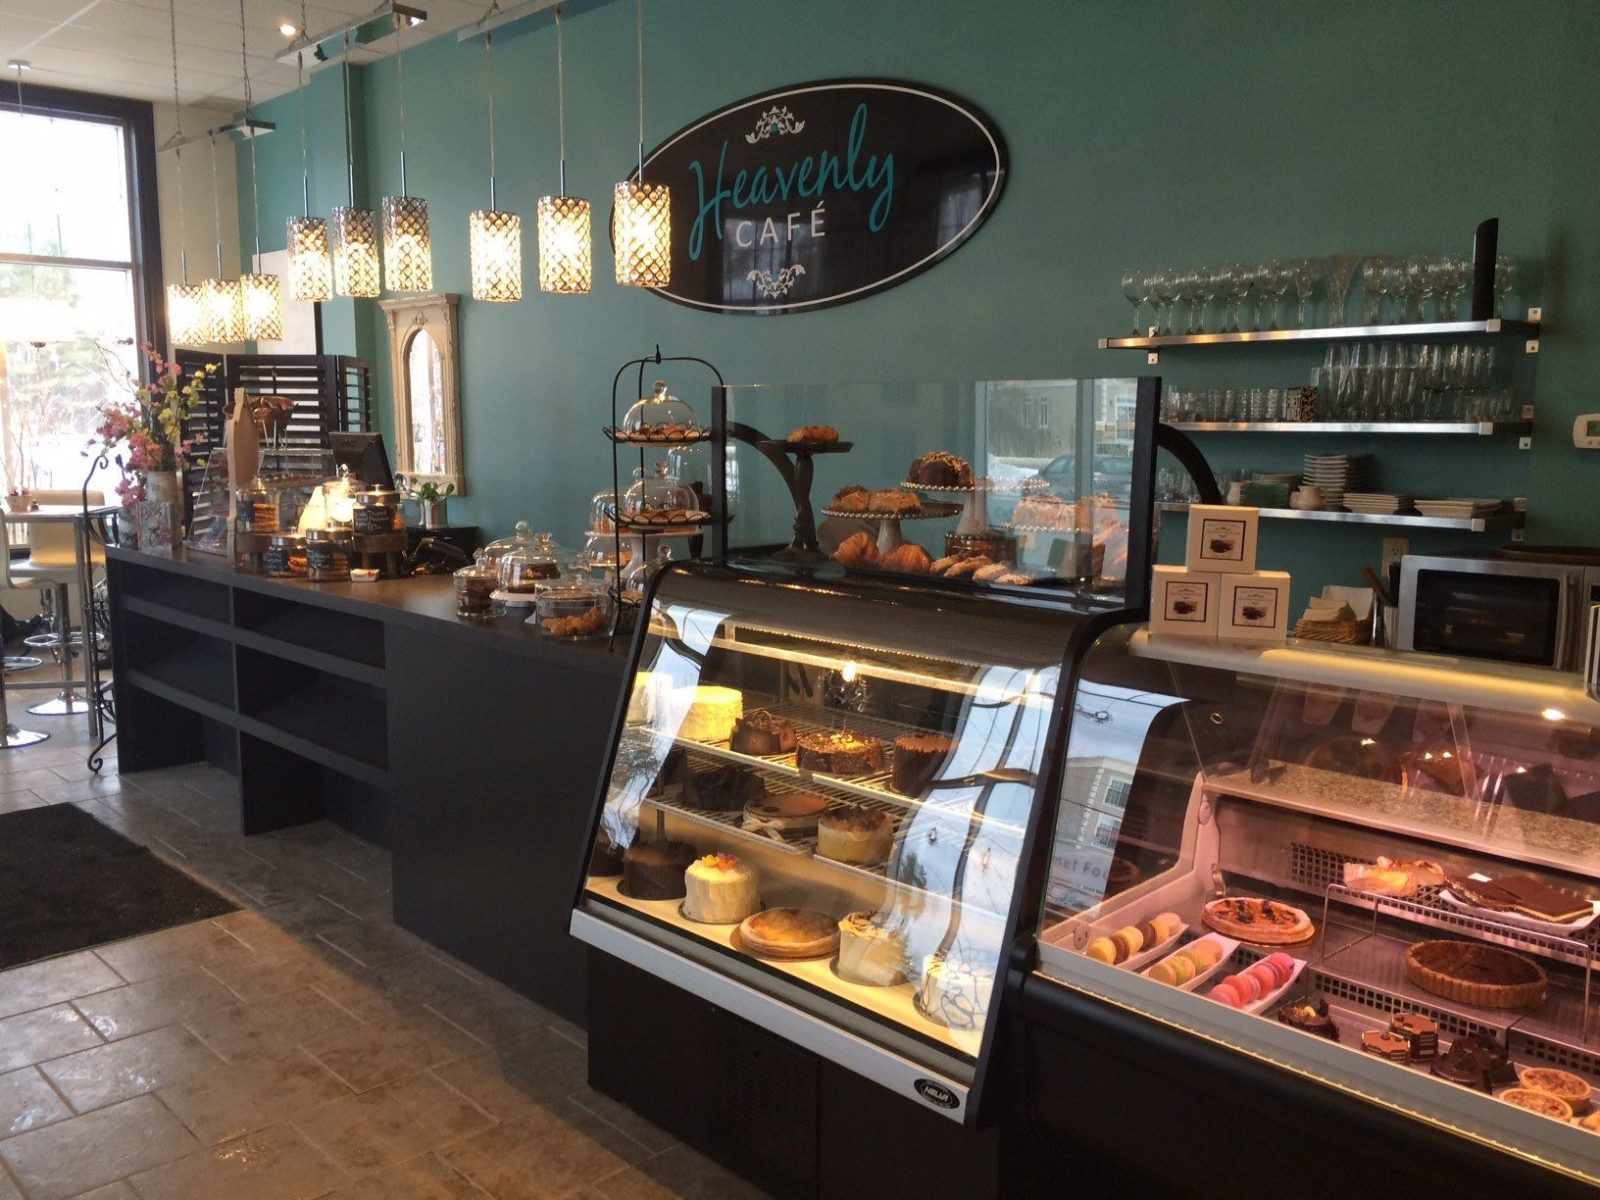 The interior of Heavenly Cafe showing counter with cakes and pastries